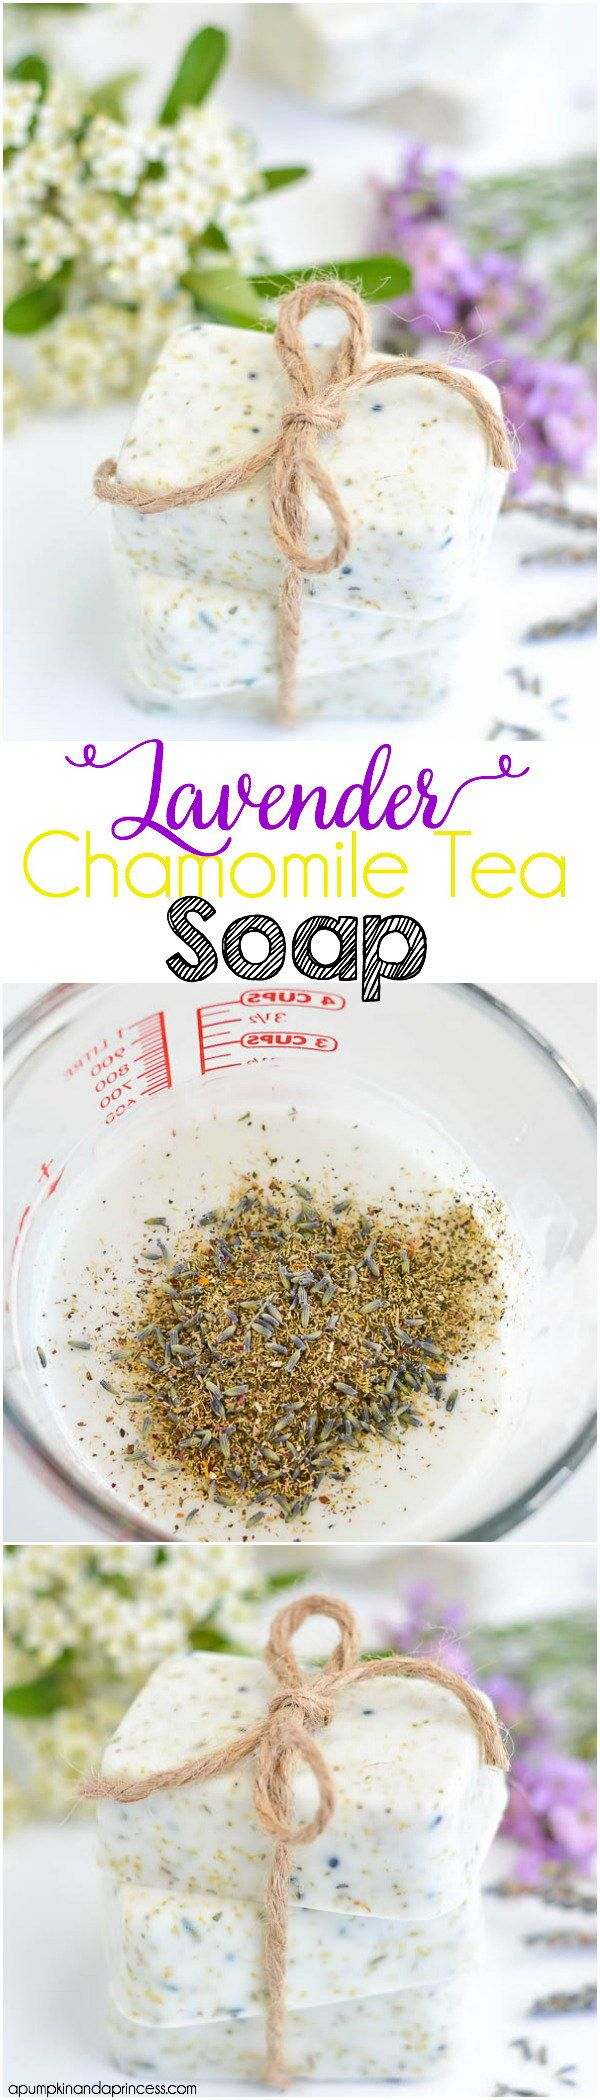 Lavender Chamomile Tea Soap.